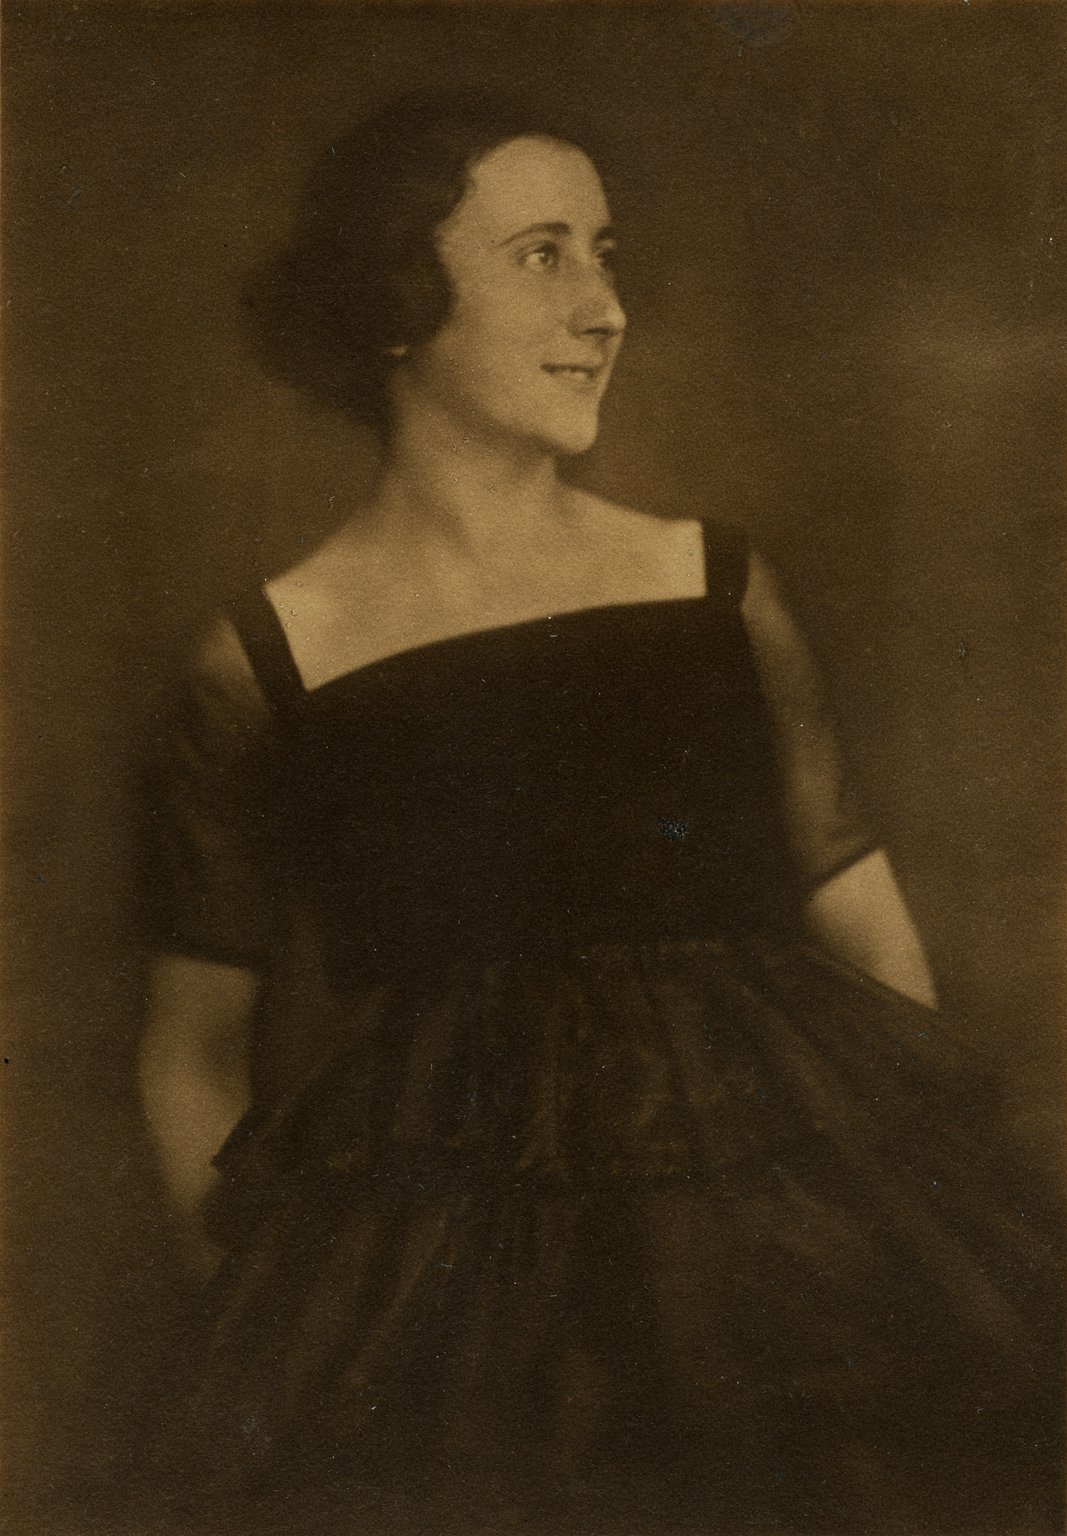 Edith Holländer as a young woman in evening dress, 1920s.